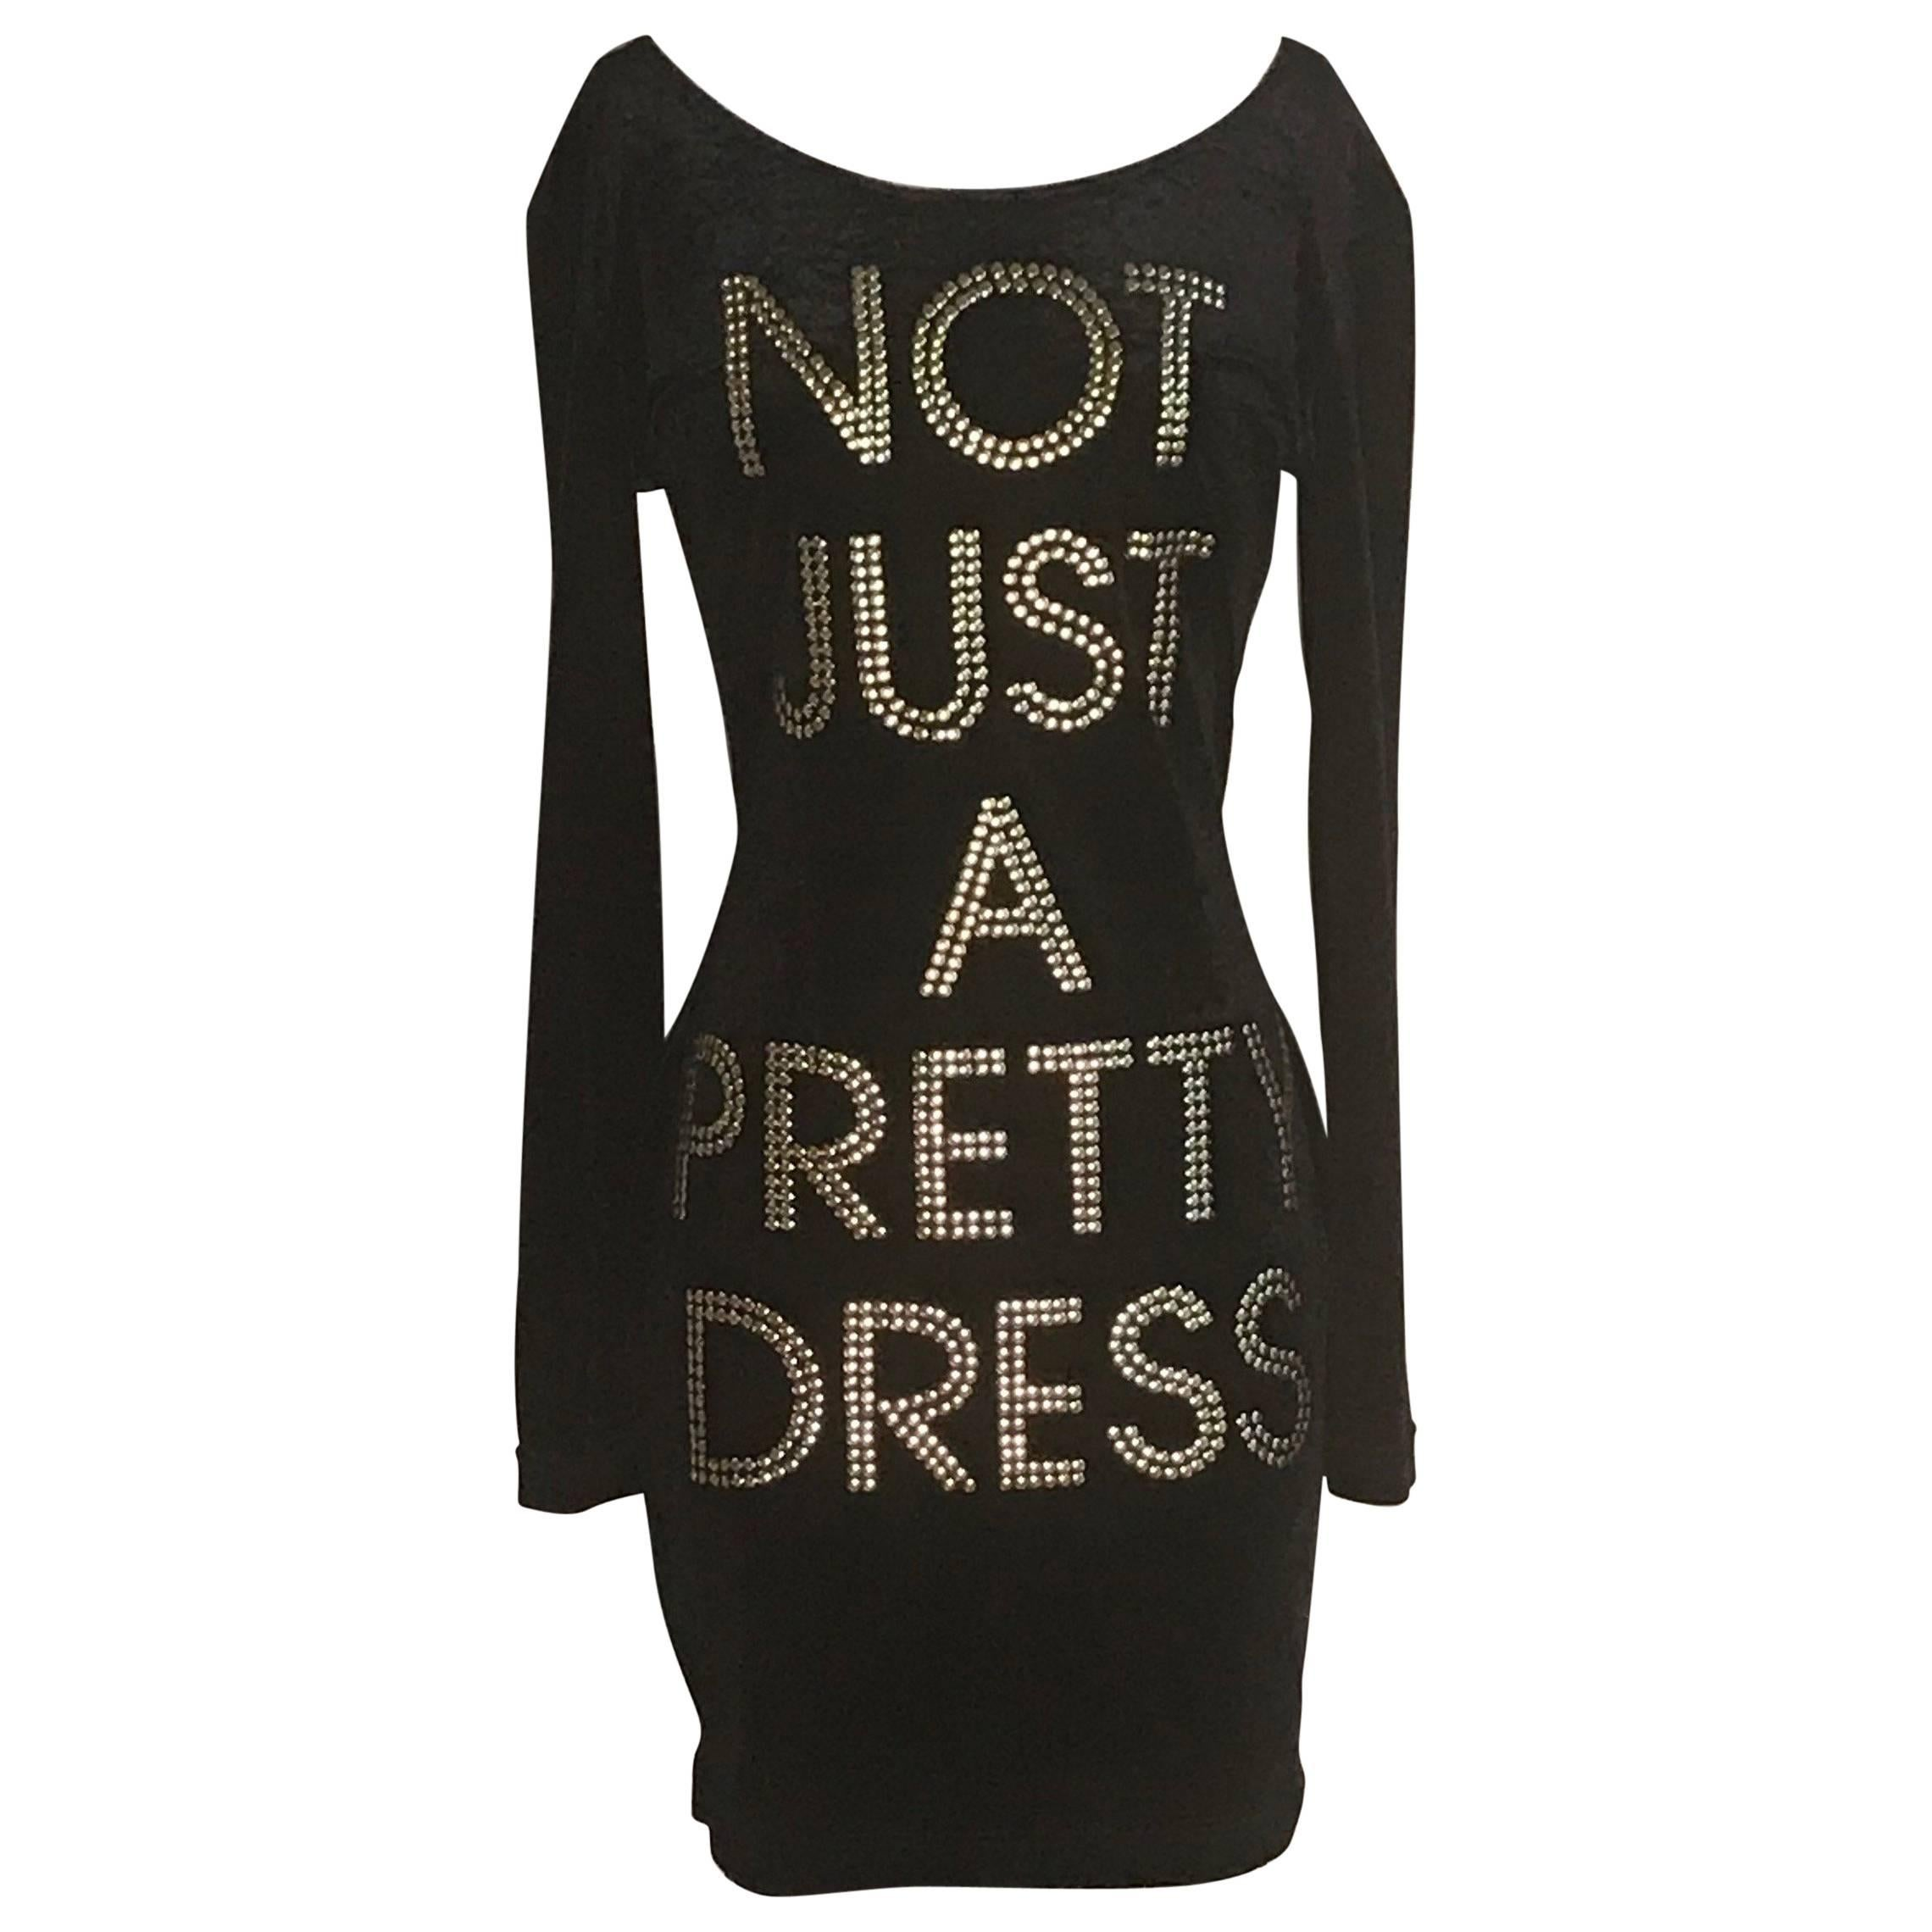 Moschino 1980s Cheap & Chic Black Velour Not Just A Pretty Dress with Gold Studs